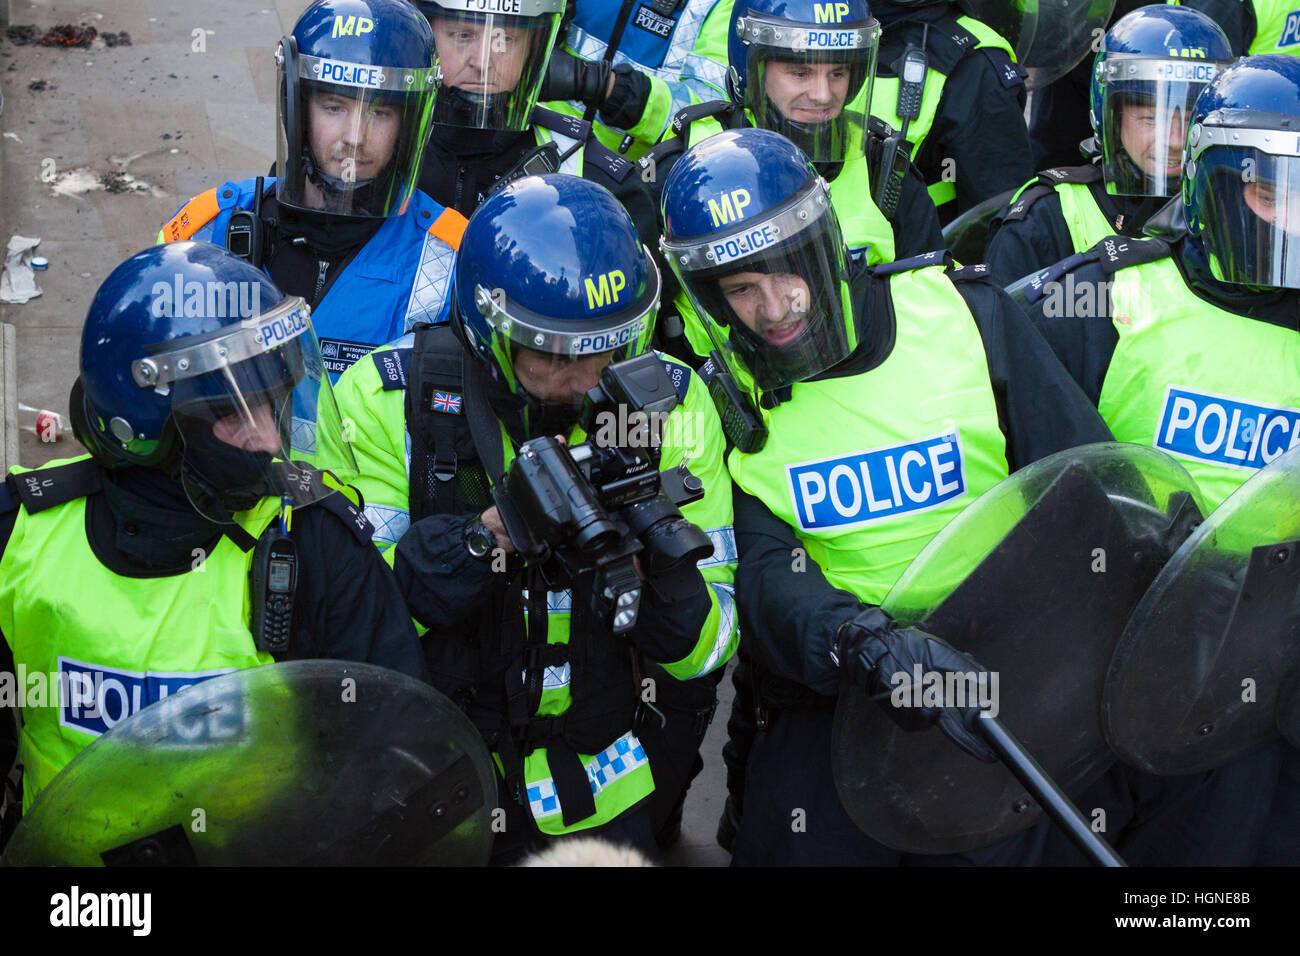 A Metropolitan (Met) Police officer points to a subject for a FIT photographer at a protest demonstration in London - Stock Image